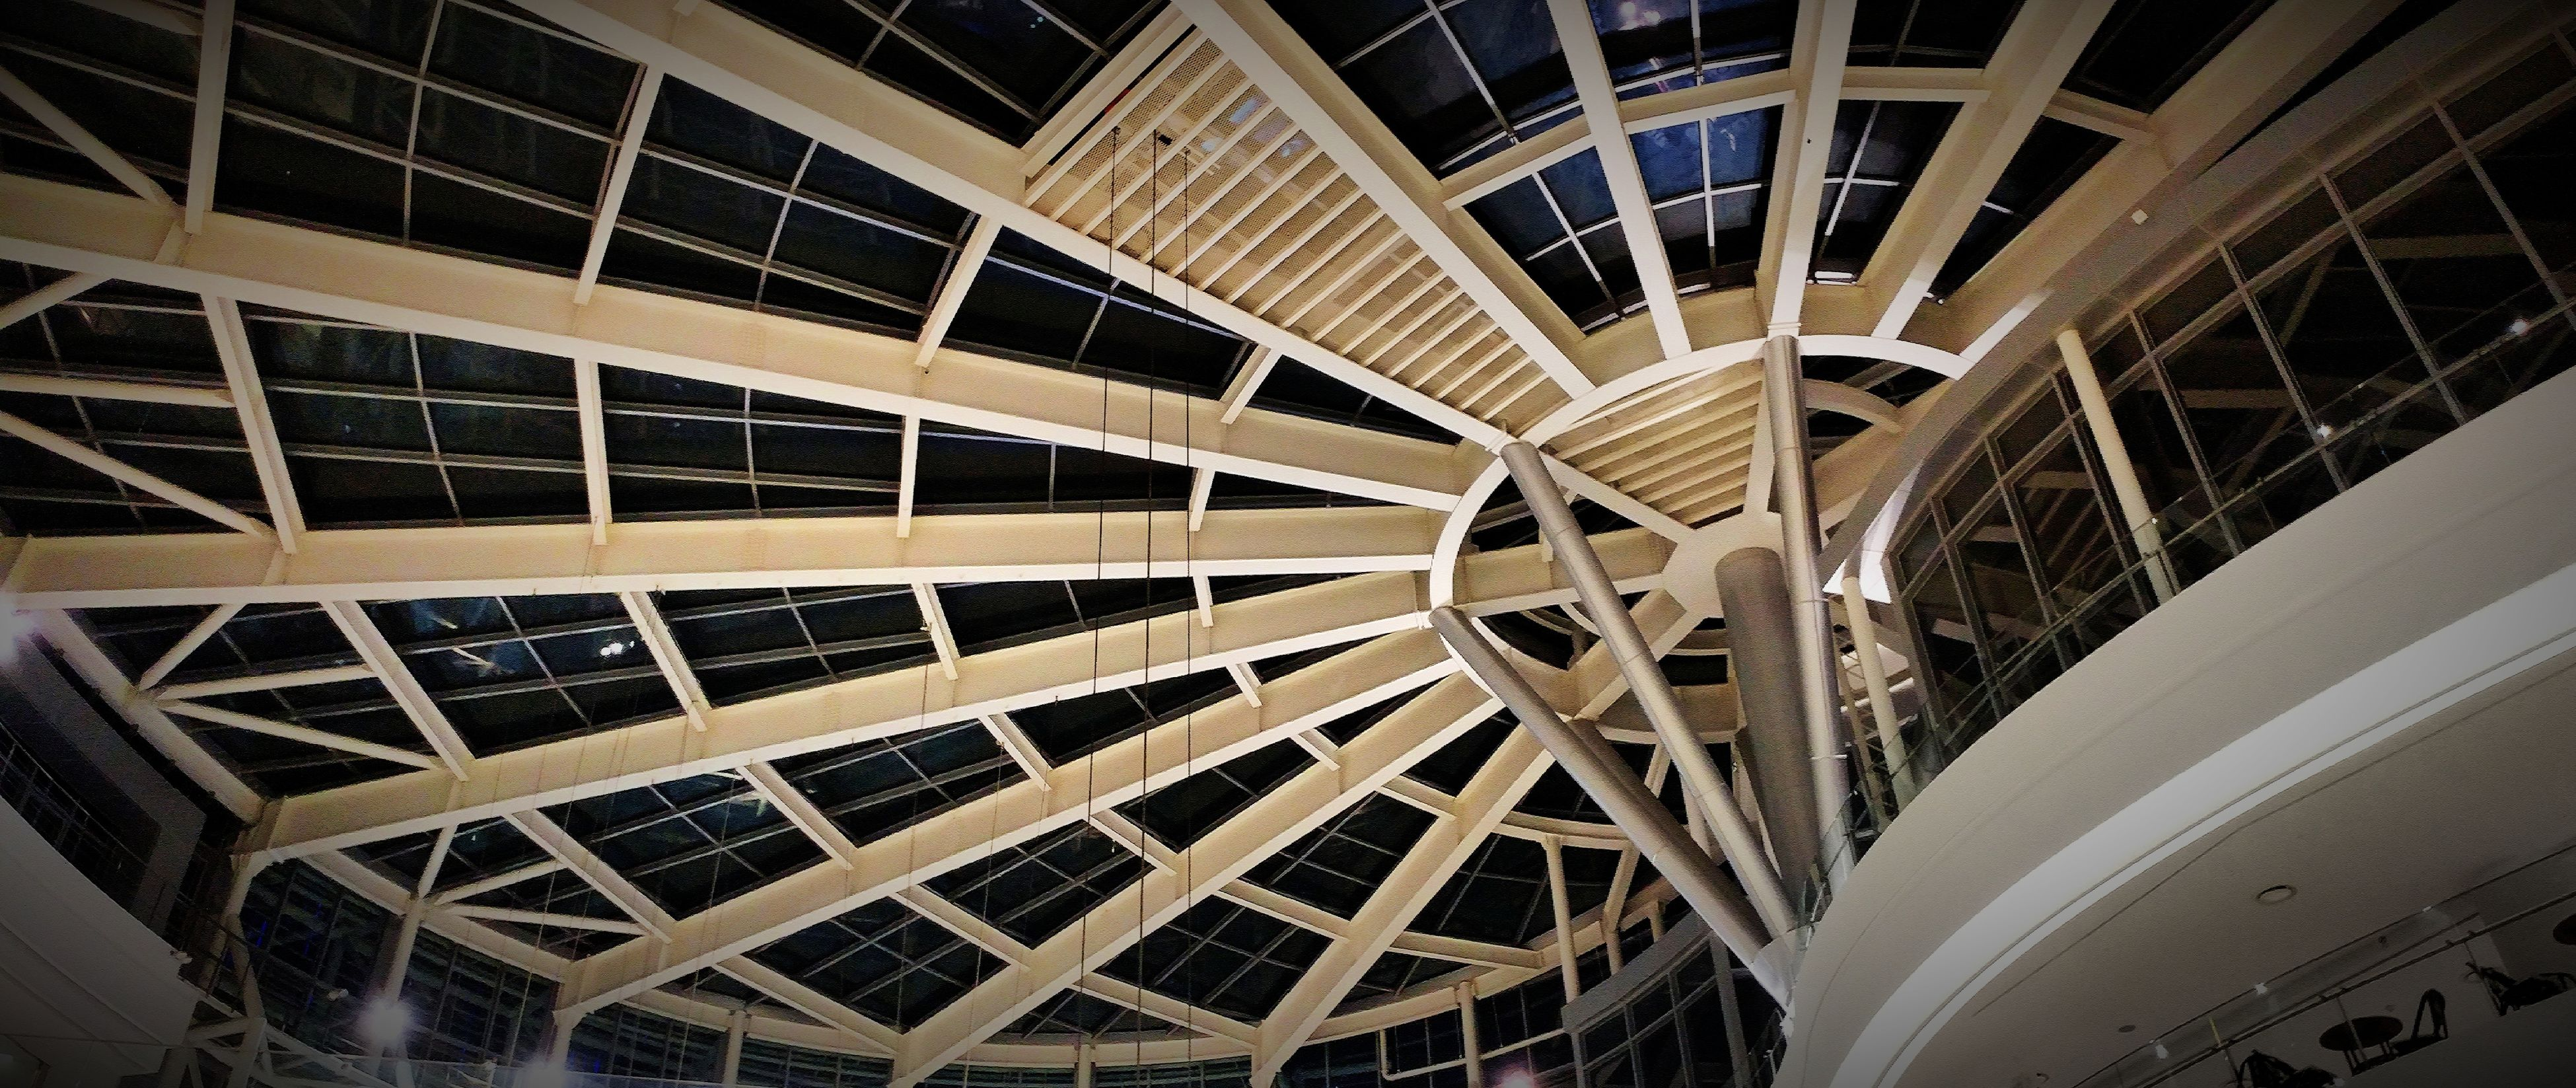 architecture, built structure, building exterior, low angle view, architectural feature, indoors, famous place, modern, city, capital cities, travel destinations, international landmark, ceiling, arch, travel, building, tourism, day, bridge - man made structure, pattern